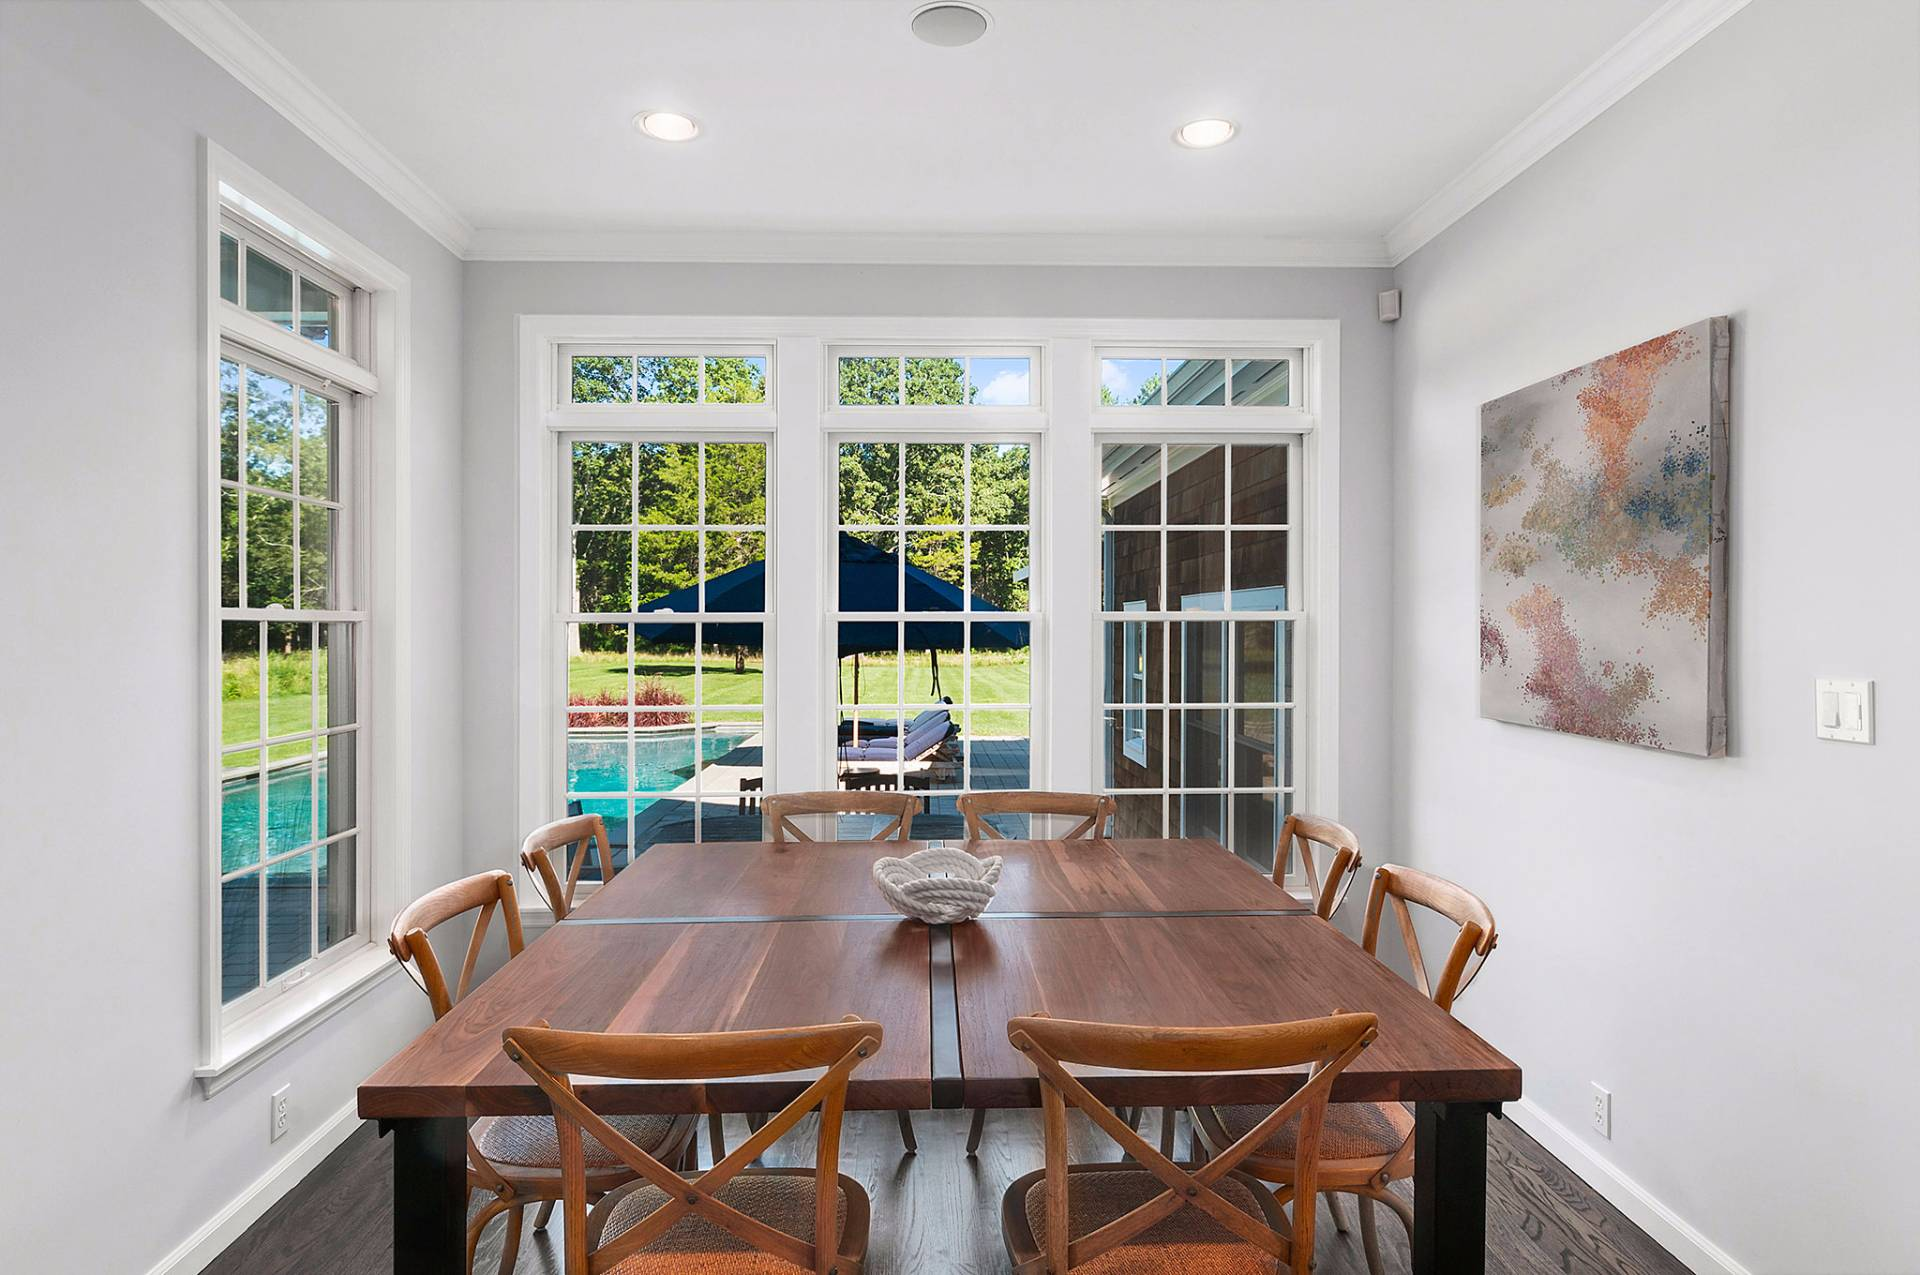 Additional photo for property listing at 100 Greenleaf Lane  Sagaponack, Nueva York